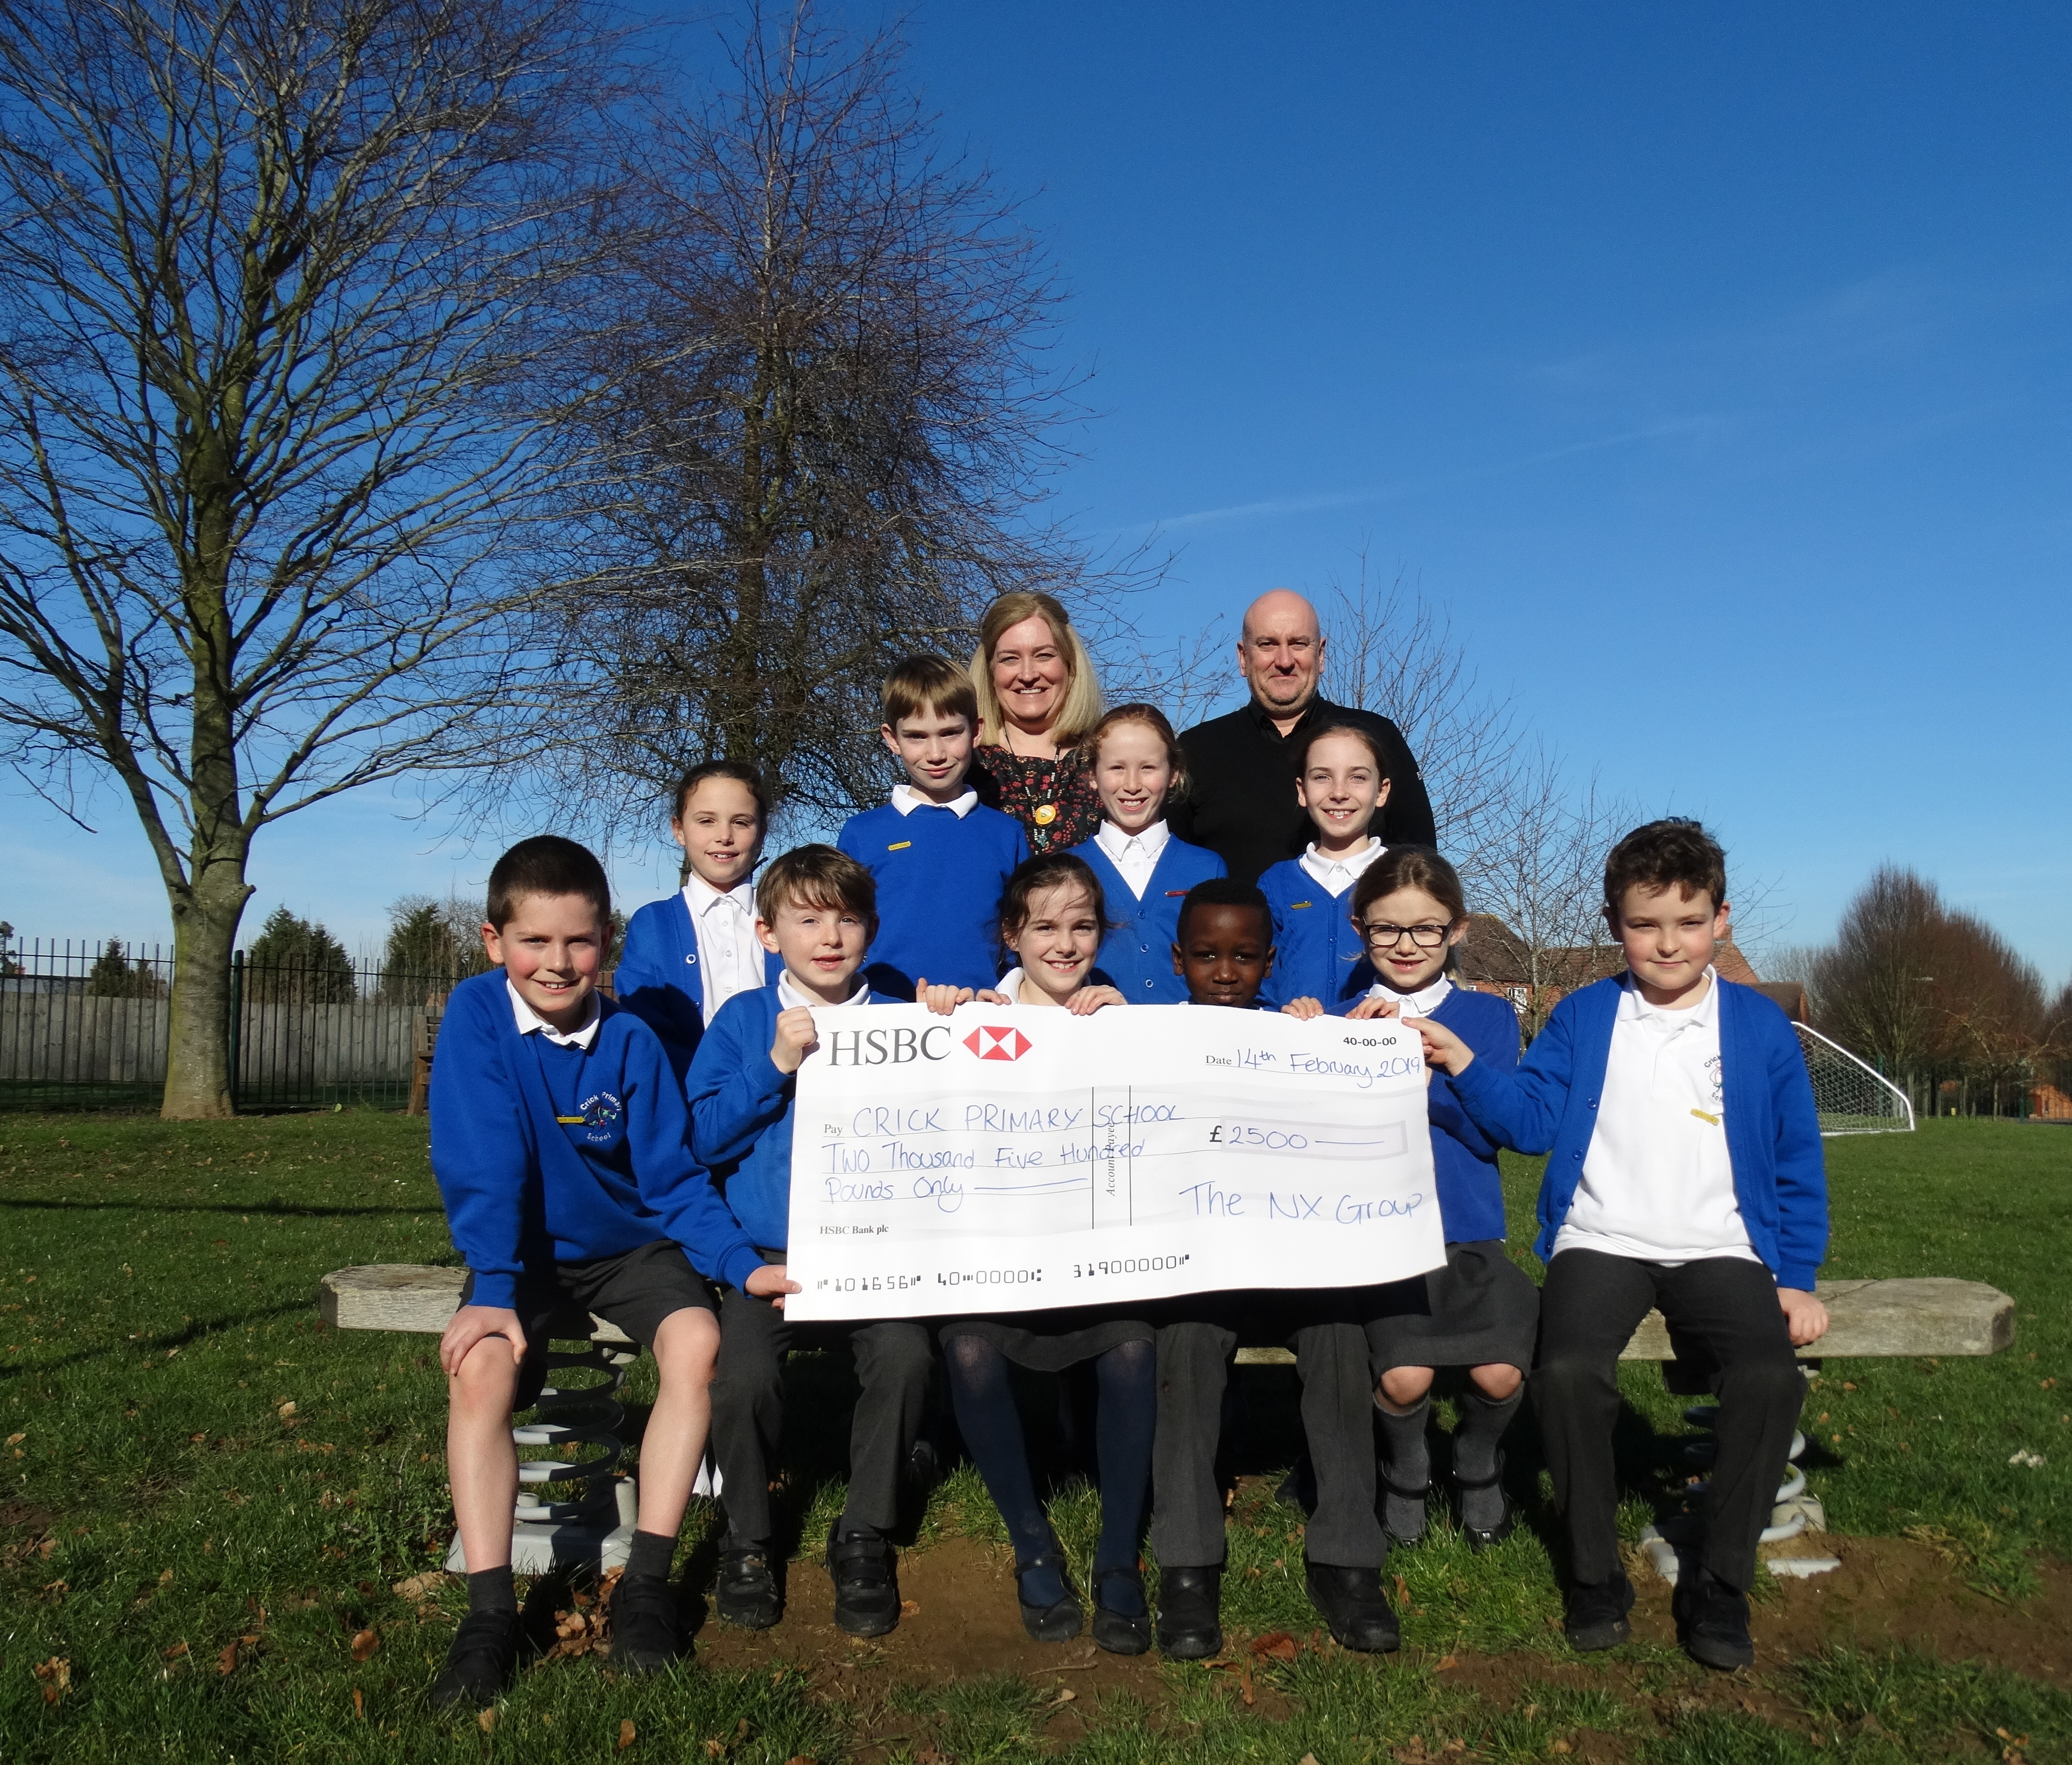 Local firm's £2500 donation set to revamp neighbouring school's playground